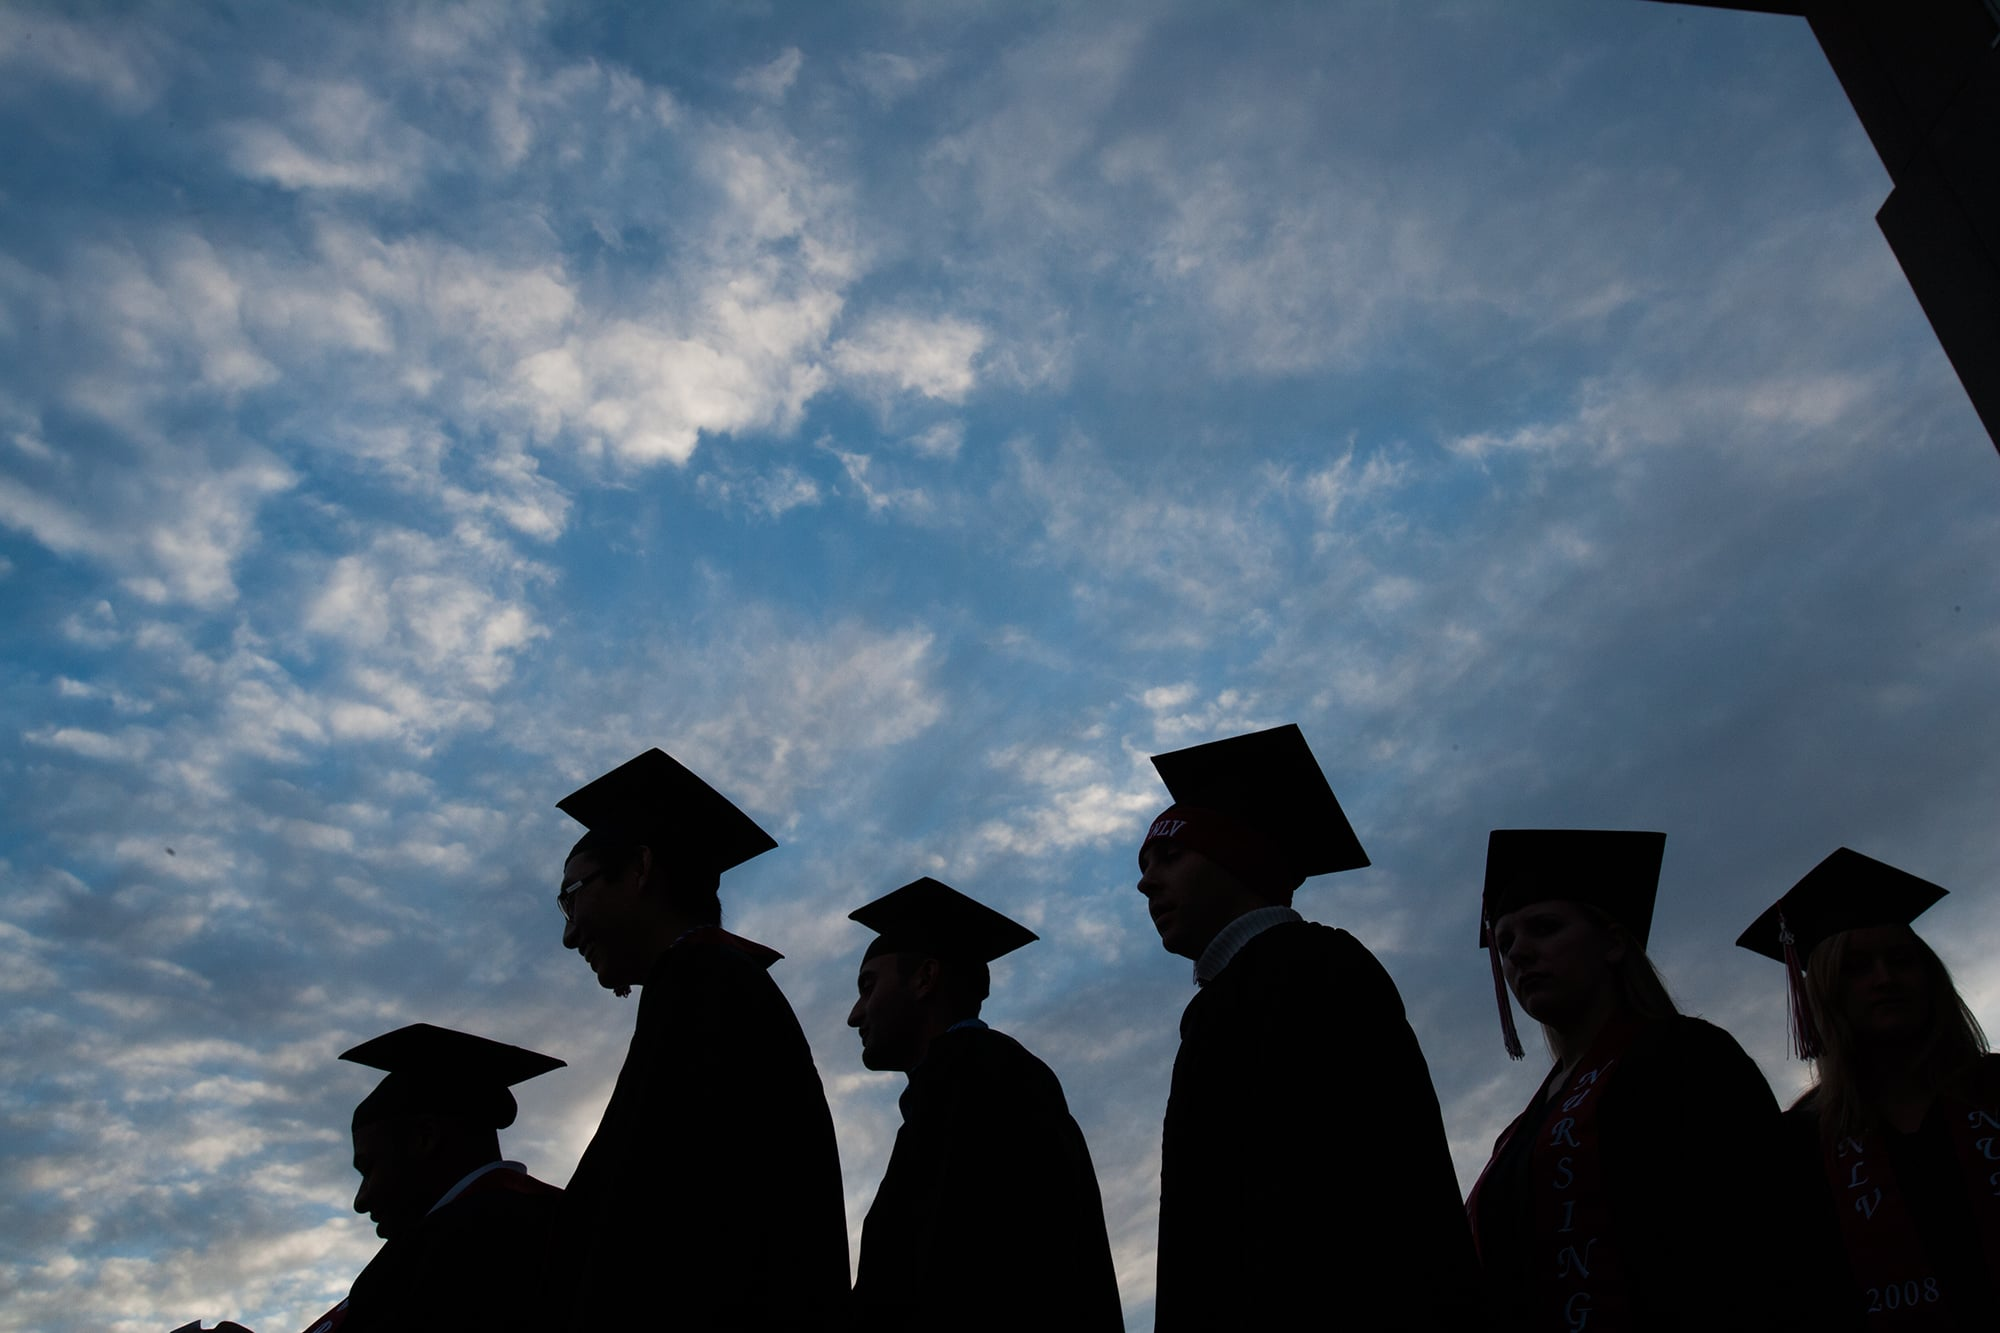 silhouette of six students in cap and gown during a cloudy sunset